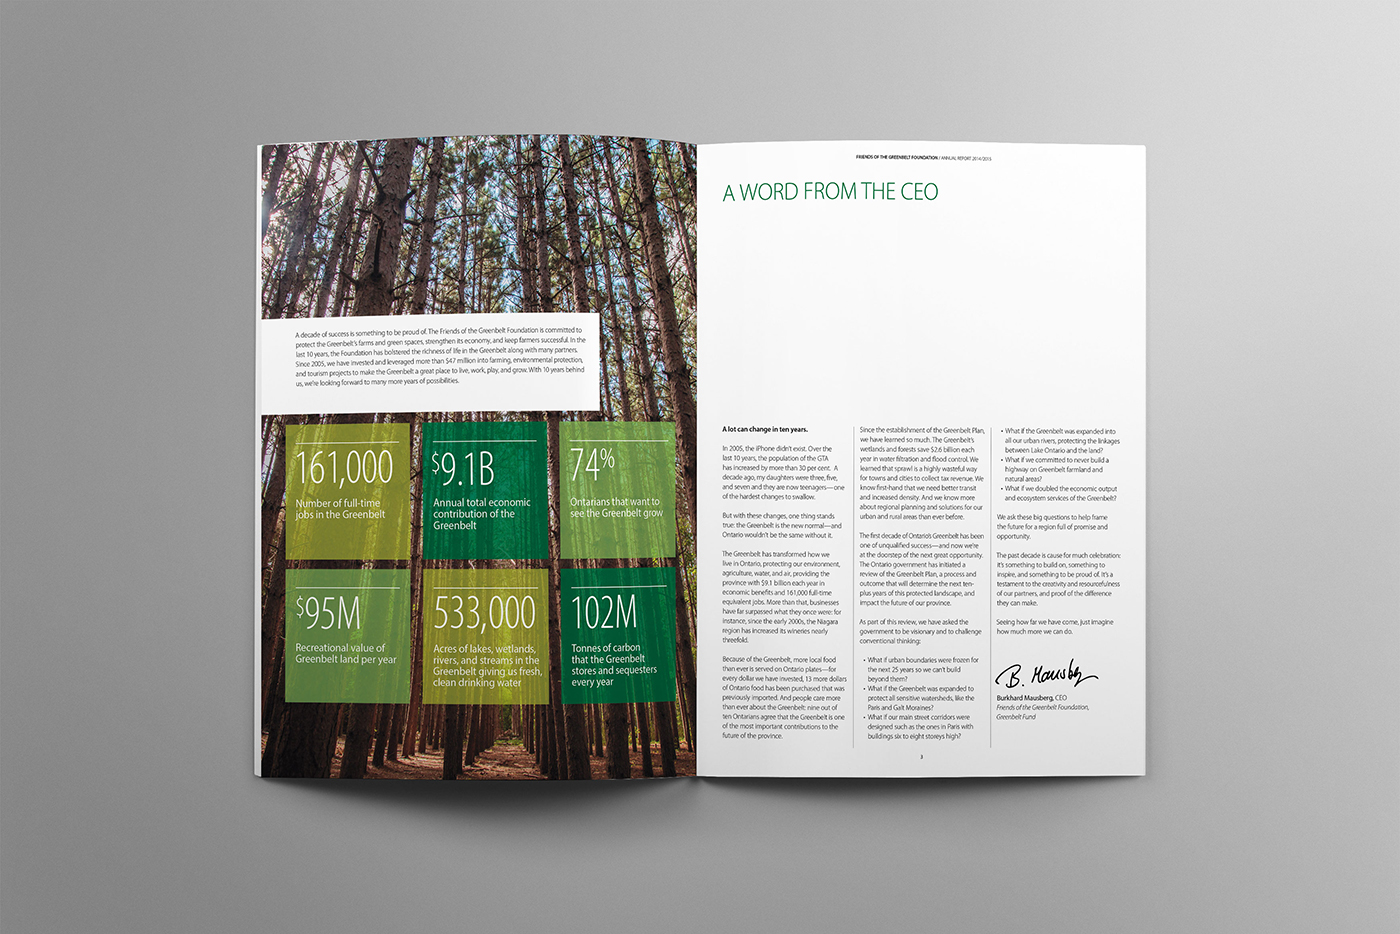 A word from the CEO highlights the growth and successes of the Greenbelt foundation over 2014-1015, showing highlights of our beautiful greenbelt region.